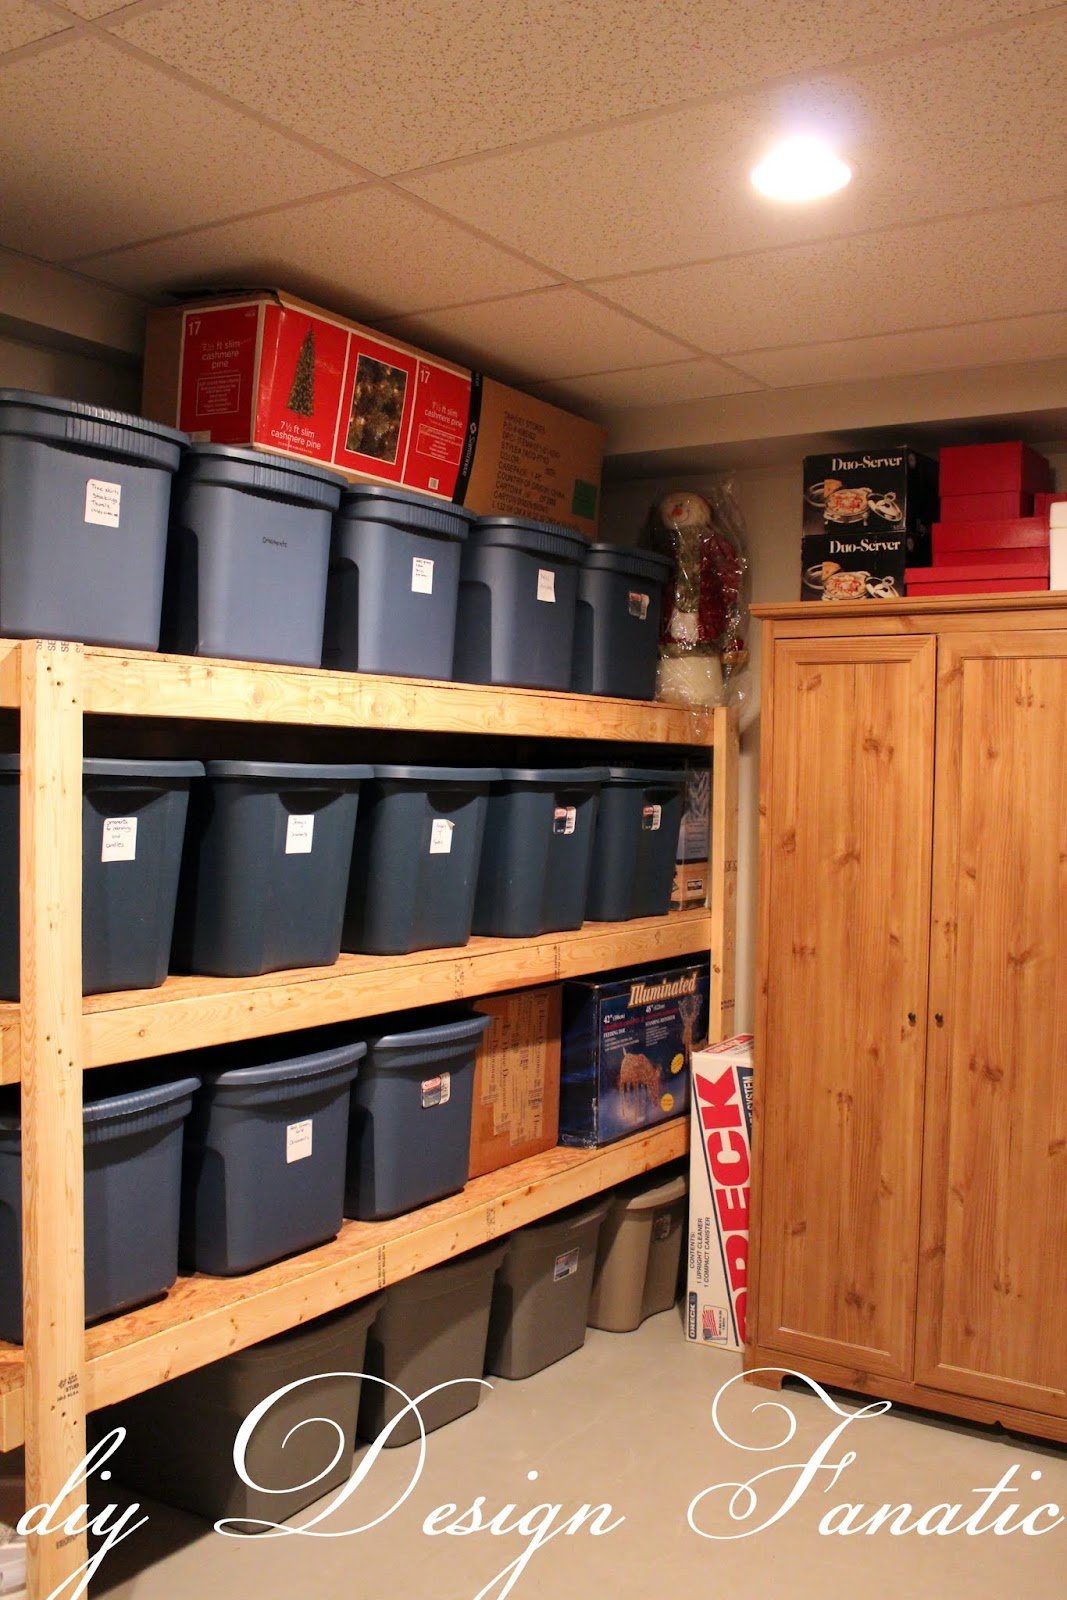 Diy design fanatic diy storage how to store your stuff for Basement storage ideas